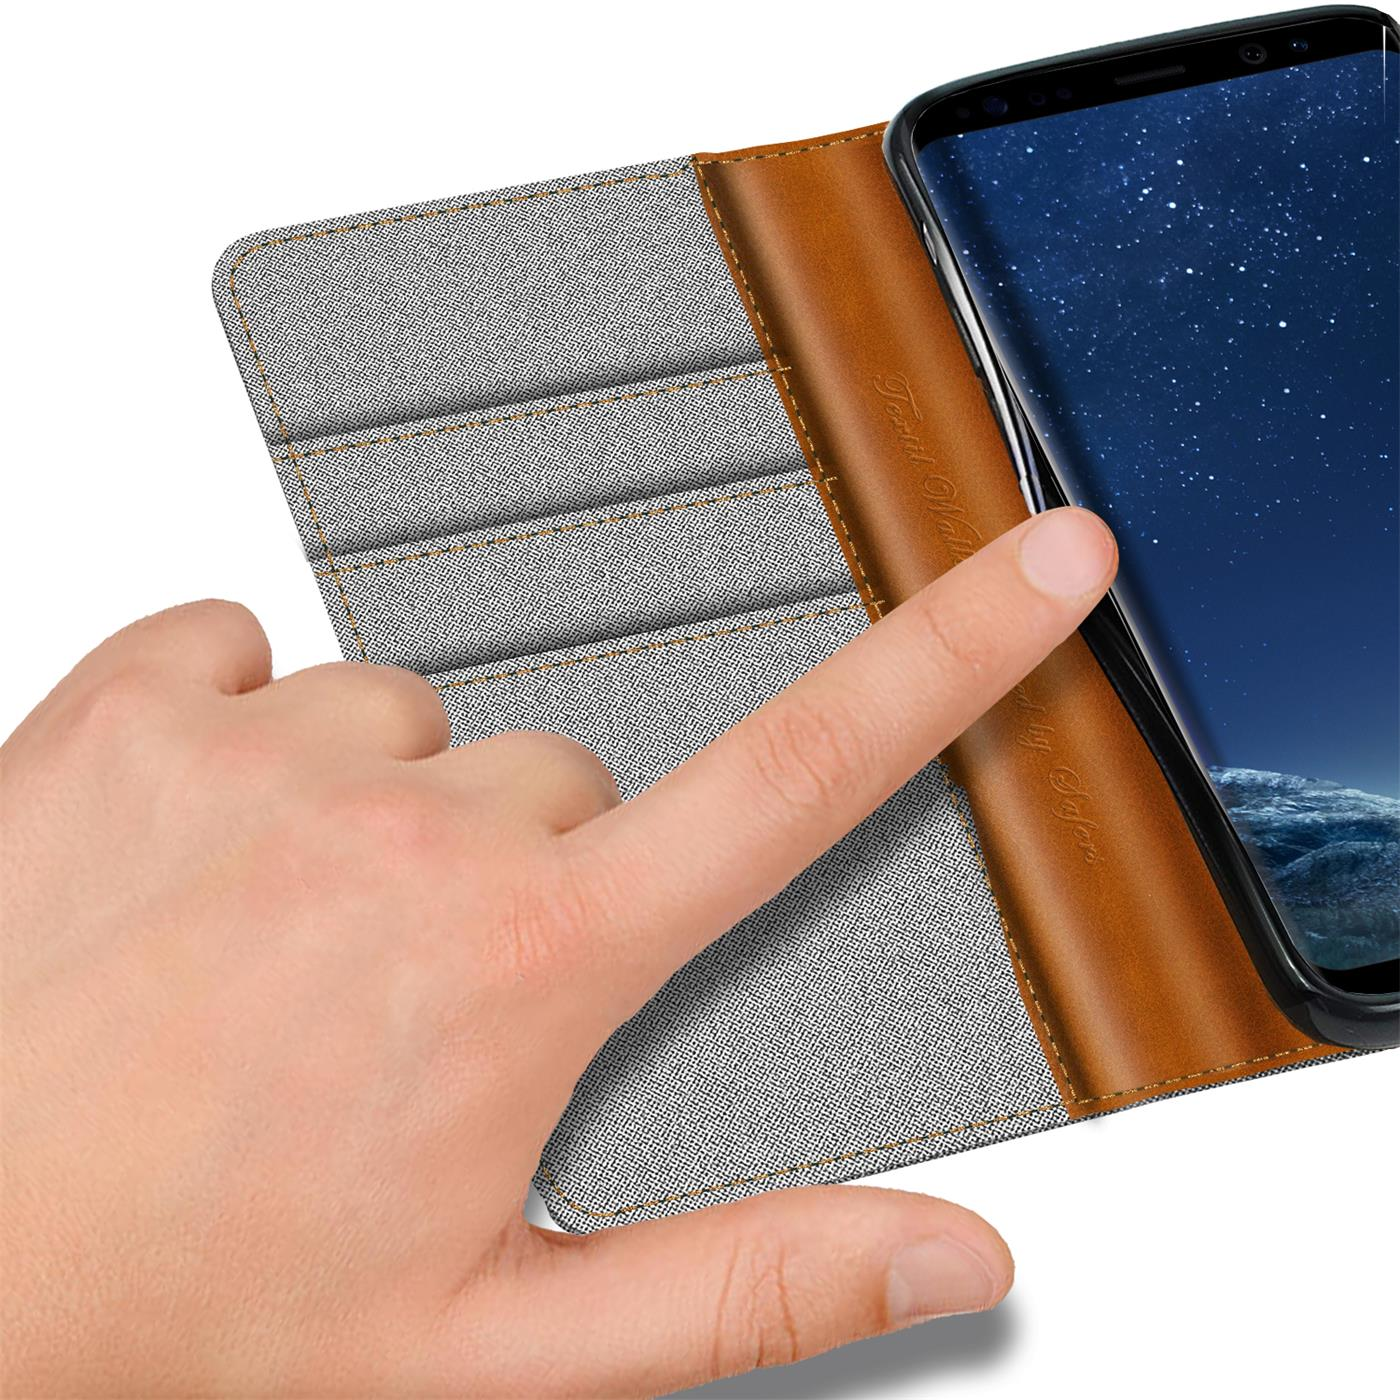 Samsung-Galaxy-S8-Plus-Phone-PU-Leather-Magnetic-Flip-Case-Wallet-Denim-Cover thumbnail 12